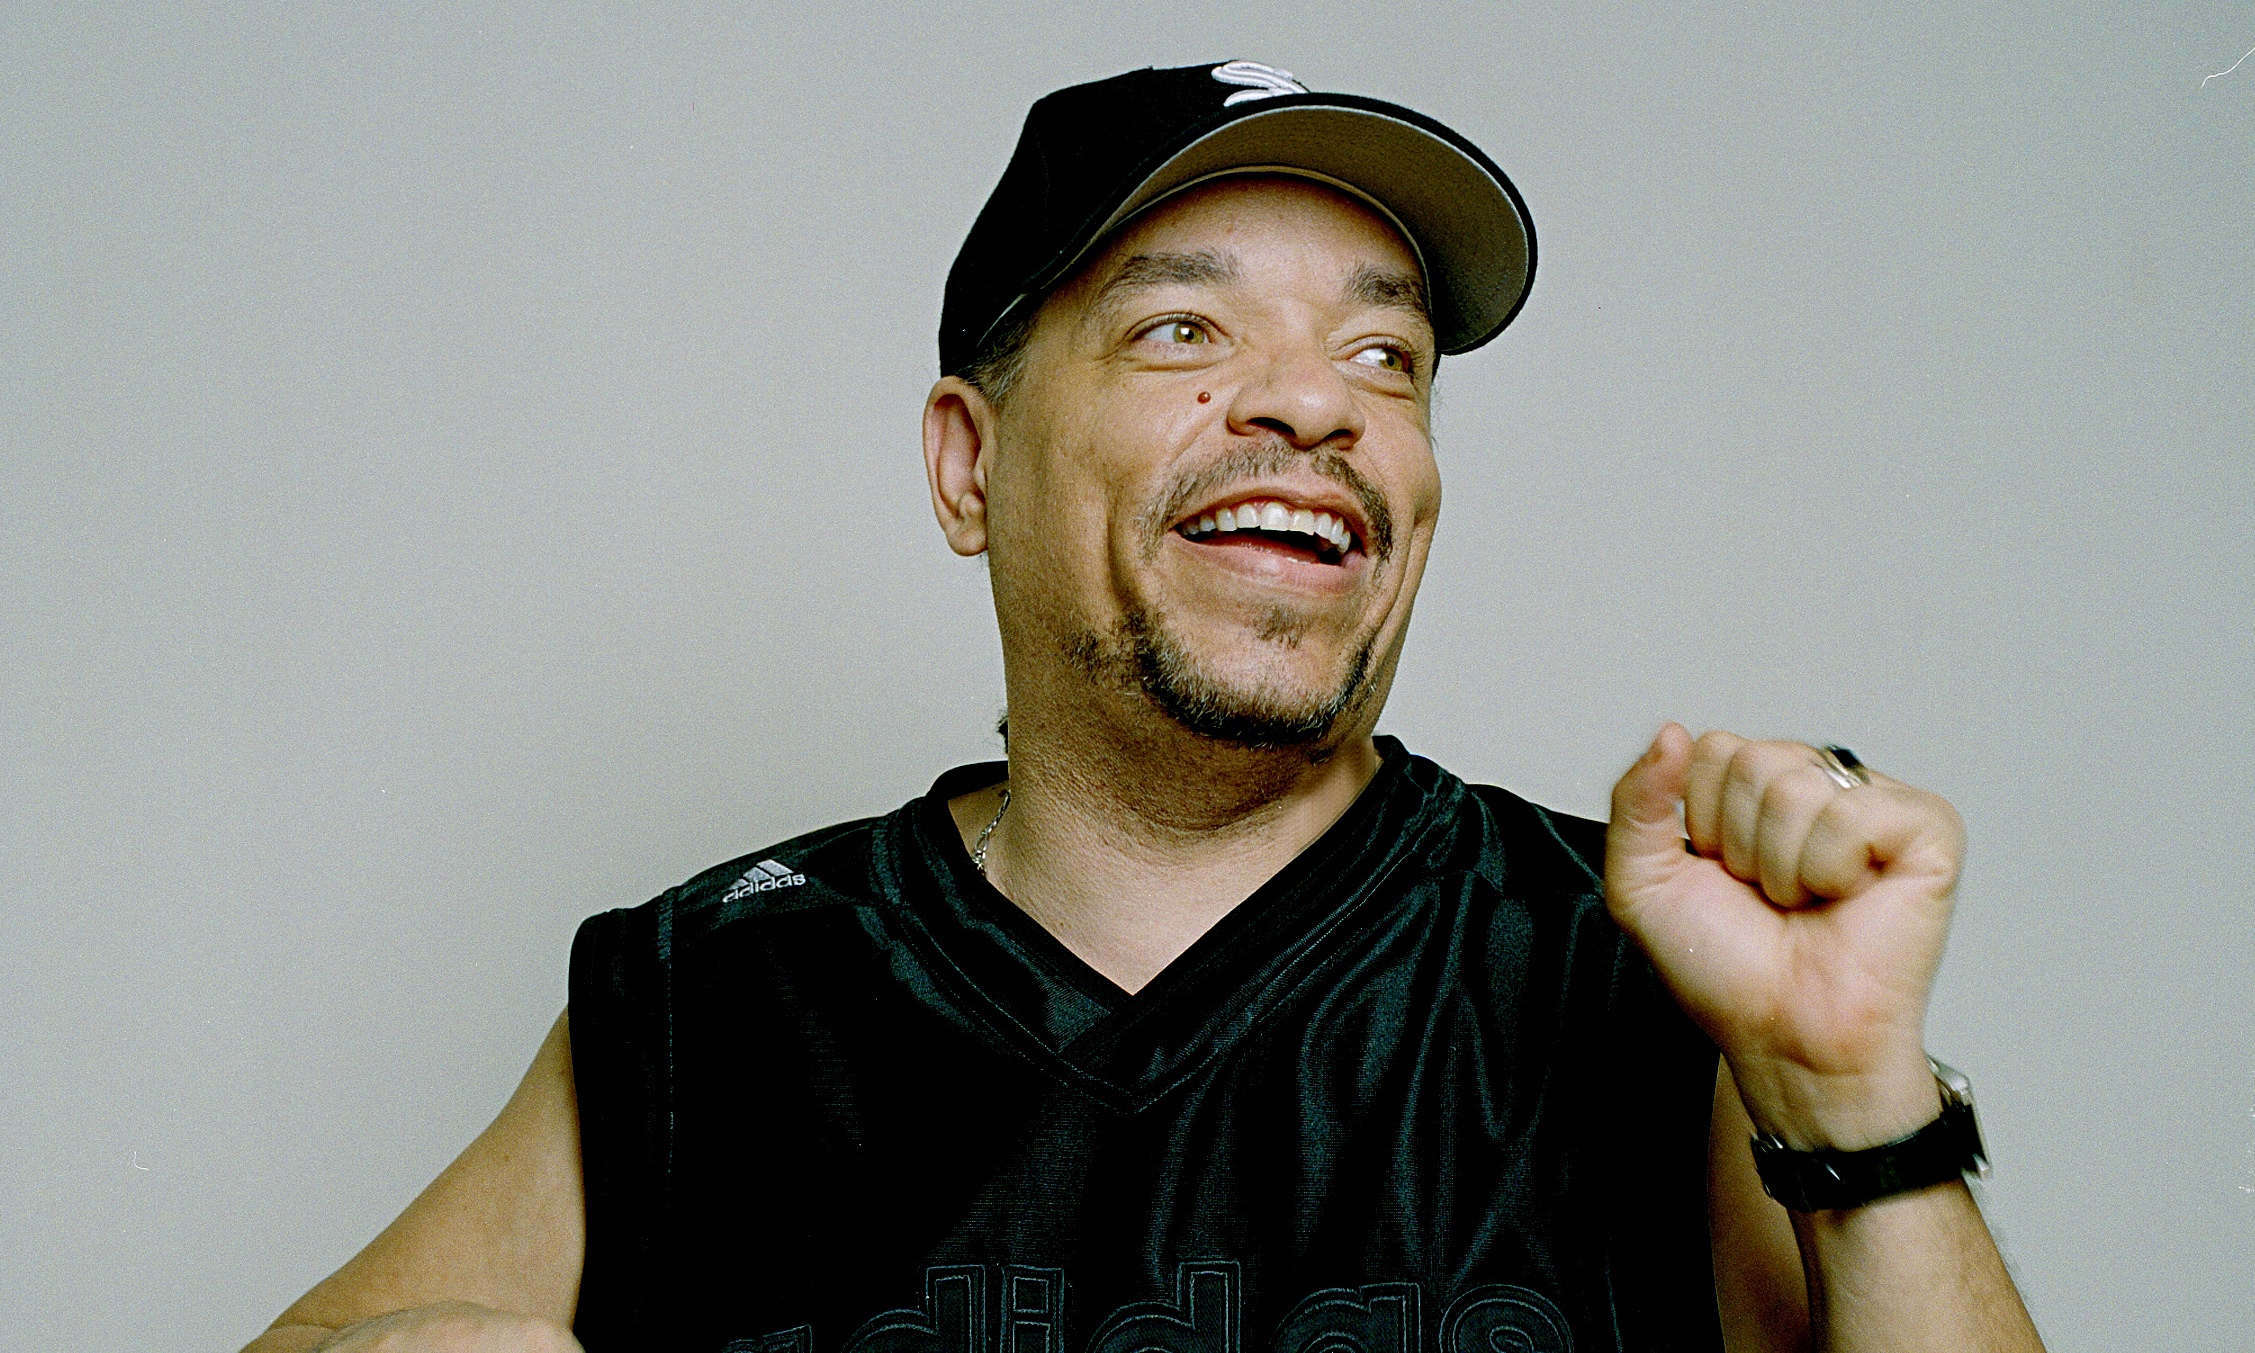 Ice T Body Count Is 100 Grindhouse Over The Top